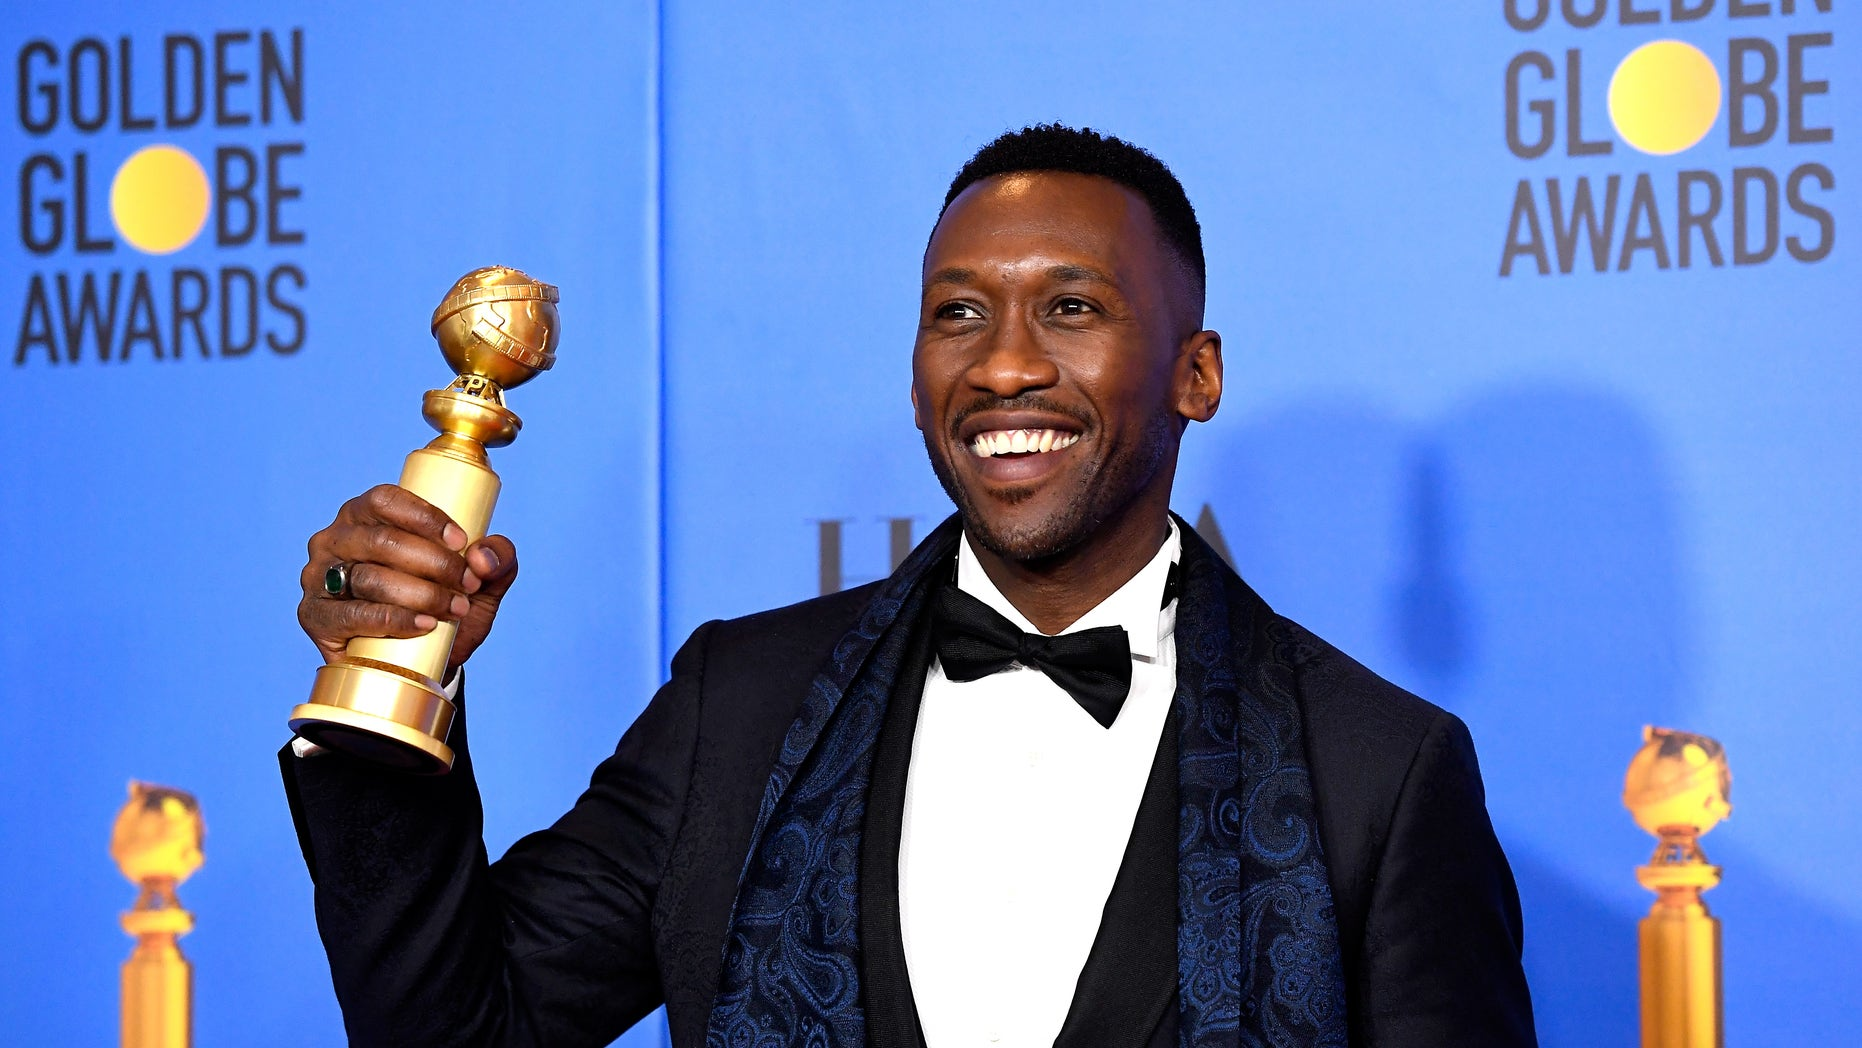 Mahershala Ali poses in the press room with award for Best Performance by an Actor in a Supporting Role in any Motion Picture 'Green Book' at the 76th Annual Golden Globe Awards held at the Beverly Hilton Hotel on January 6, 2019. -- (Photo by Kevork Djansezian/NBC/NBCU Photo Bank)